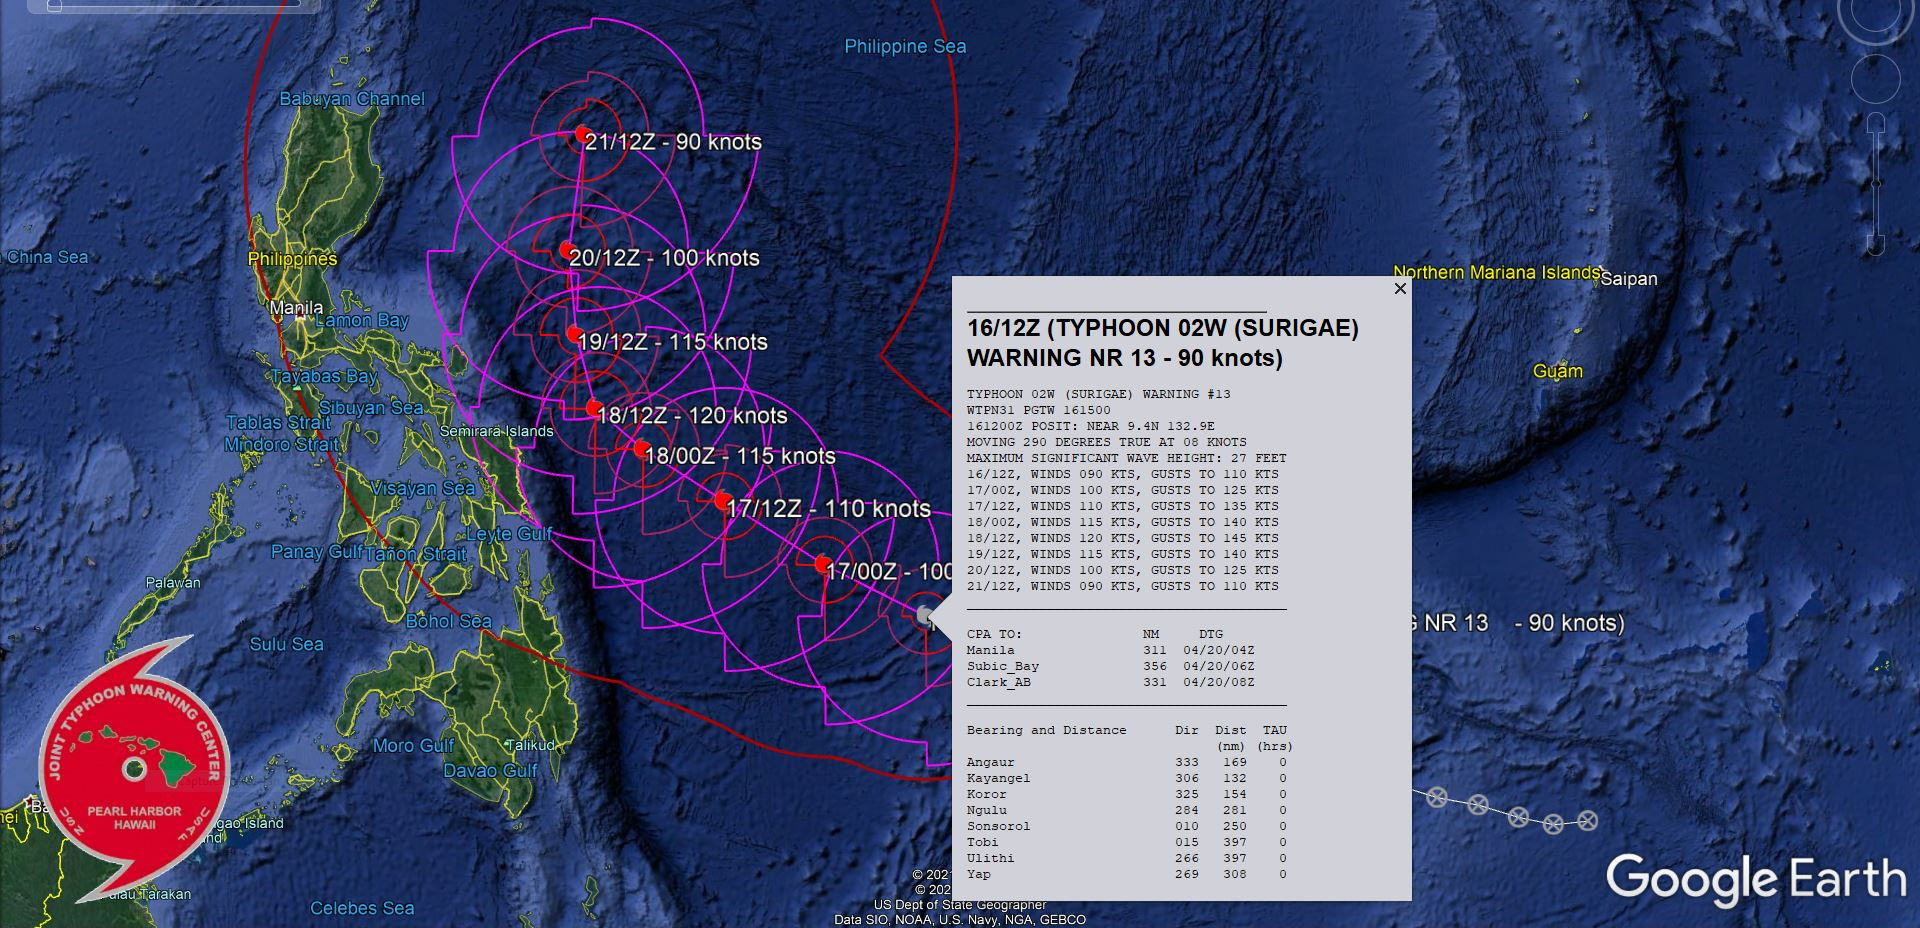 02W(SURIGAE). WARNING 13 ISSUED AT 16/15UTC.ENVIRONMENTAL ANALYSIS INDICATES FAVORABLE CONDITIONS FOR CONTINUED INTENSIFICATION WITH LOW  VERTICAL WIND SHEAR, ROBUST EQUATORWARD AND IMPROVING POLEWARD  OUTFLOW ALOFT, AND WARM (29-30C) SEA SURFACE TEMPERATURES (SST) IN  THE PHILIPPINE SEA. TY 02W IS CURRENTLY TRACKING TOWARDS A WEAKNESS  IN THE STEERING SUBTROPICAL RIDGE (STR) CAUSED BY AN APPROACHING MID- LATITUDE TROUGH.TY 02W IS FORECAST TO TRACK TO THE NORTHWEST TOWARD THIS  WEAKNESS IN THE STR THROUGH 48H. BY 48H THE STR TO THE EAST  BUILDS AND TAKES OVER AS THE PRIMARY STEERING MECHANISM, CAUSING TY  02W TO TURN NORTHWARD. THE SYSTEM WILL STEADILY INTENSIFY DUE TO  ROBUST UPPER-LEVEL OUTFLOW AMPLIFIED BY THE MID-LATITUDE TROUGH WITH  TY 02W REACHING PEAK INTENSITY OF 120KNOTS/CAT 4 BY 48H.  AFTER 72H, TY SURIGAE CONTINUES TO TRACK NORTHWARD ALONG  THE WESTERN PERIPHERY OF THE STR TO THE EAST. THE ENVIRONMENTAL  CONDITIONS WILL BECOME LESS FAVORABLE AS THE AMOUNT OF UPPER-LEVEL  DIVERGENCE DECREASES SIGNIFICANTLY BY 96H CAUSING THE SYSTEM TO  DECREASE TO 90KNOTS/CAT 2 BY 120H.